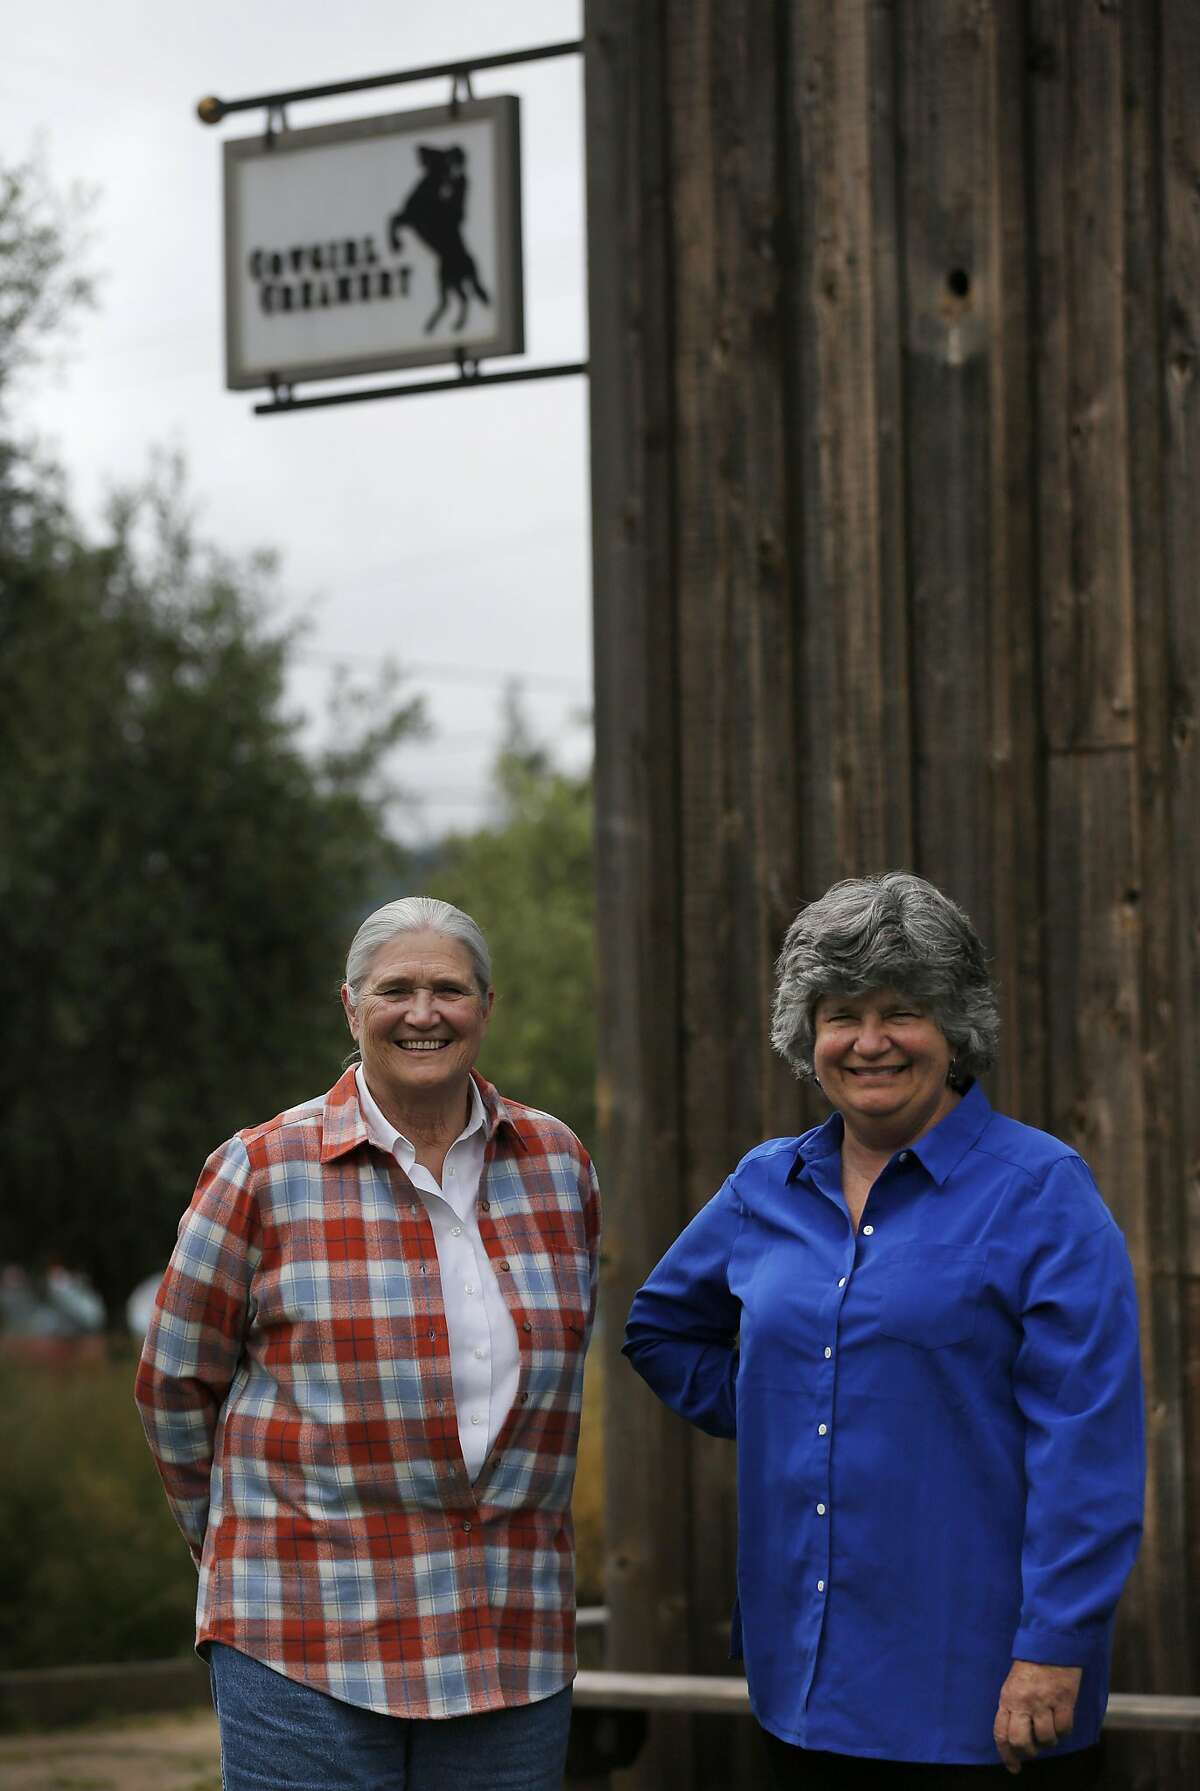 Co-founders of Cowgirl Creamery Peggy Smith, left, and Sue Conley pictured at their shop May 14, 2016 in Point Reyes Station, Calif.